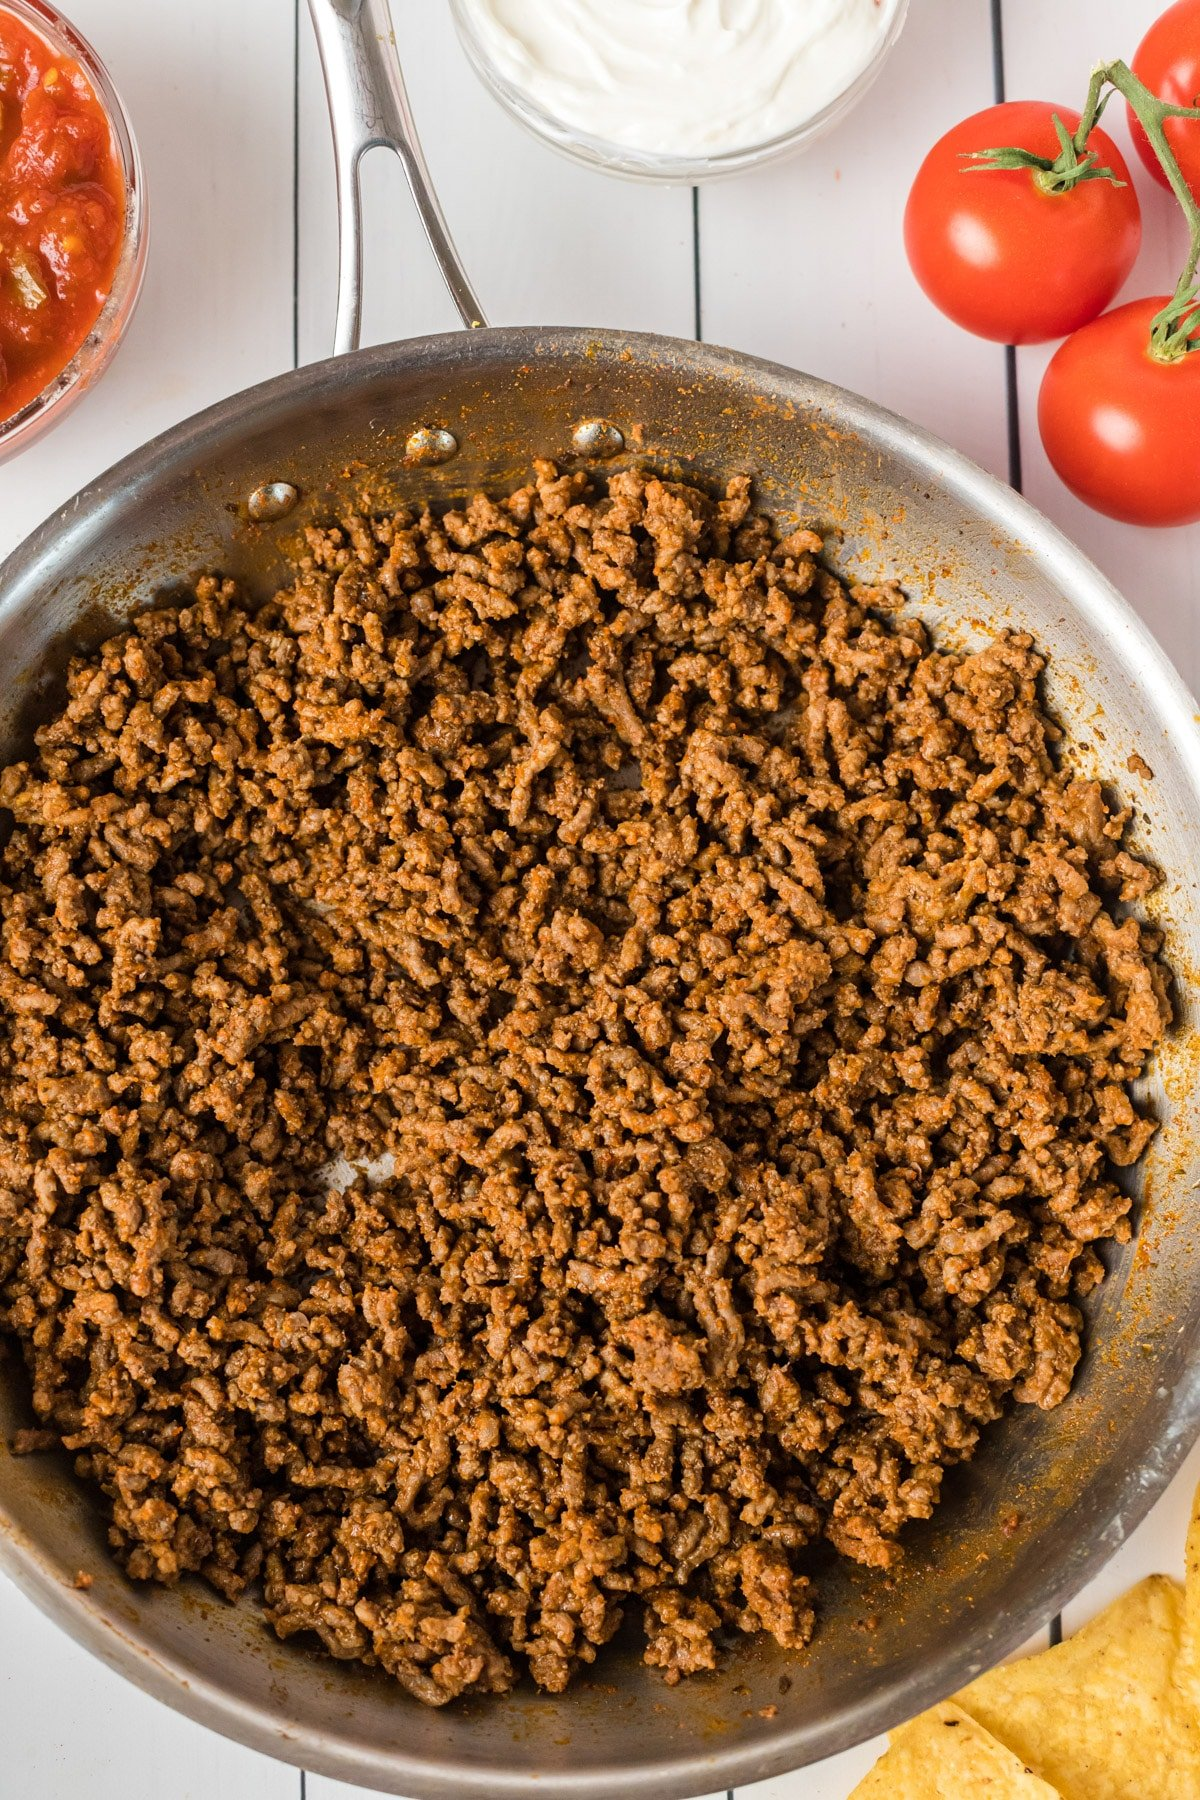 Pan full of homemade taco meat